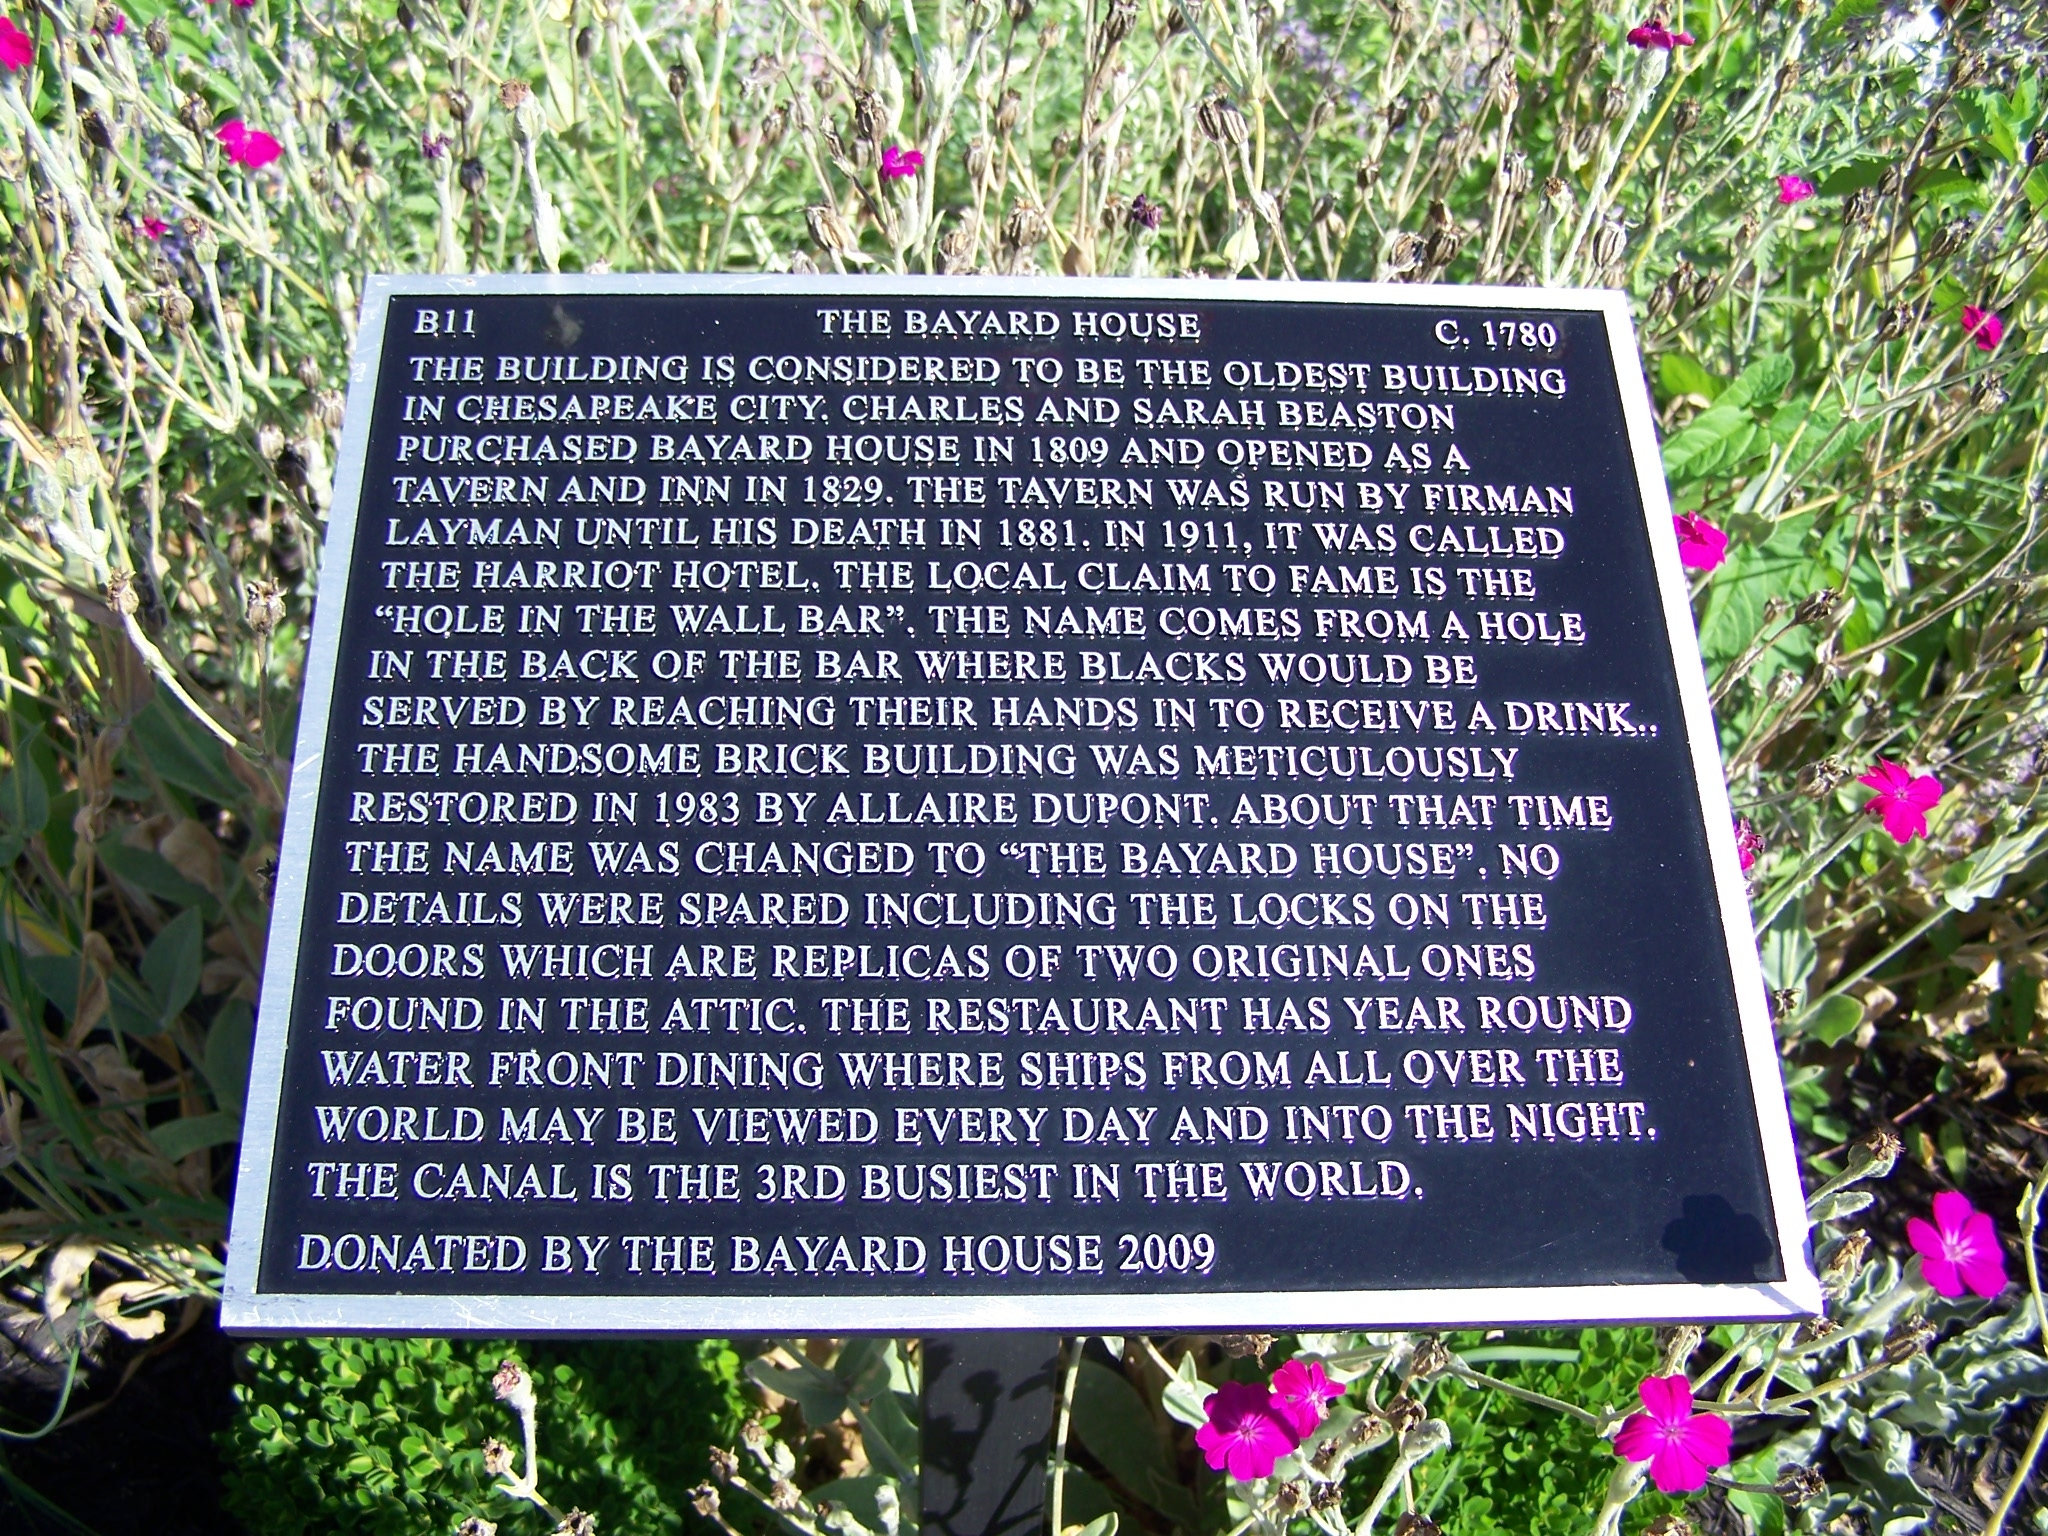 The Bayard House Marker